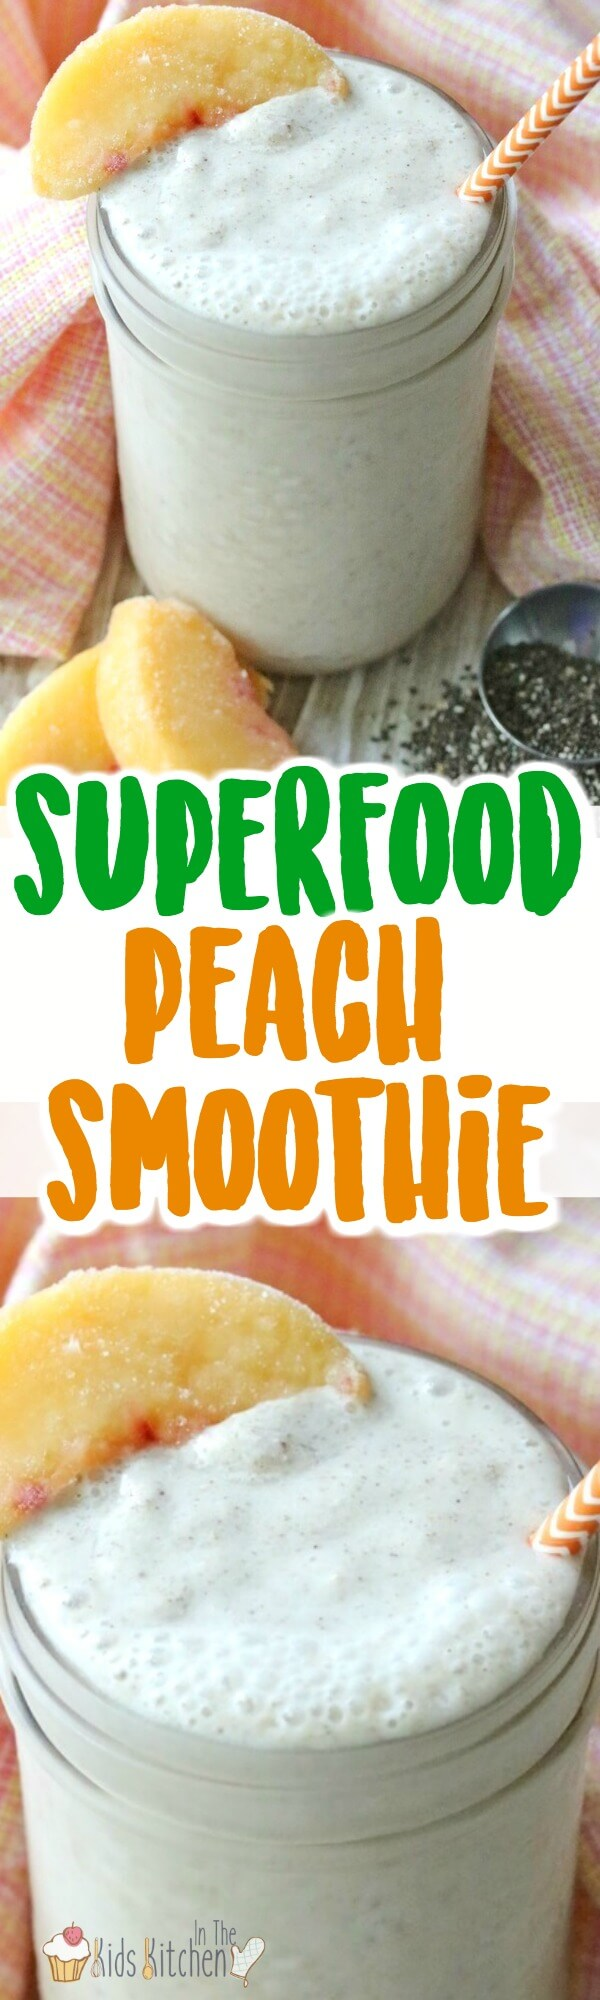 Start the day with a superfood kick! This healthy peach smoothie is full of goodies and easy to make! Vitamins, calcium, and more! (Bonus: it's kid-approved)!)